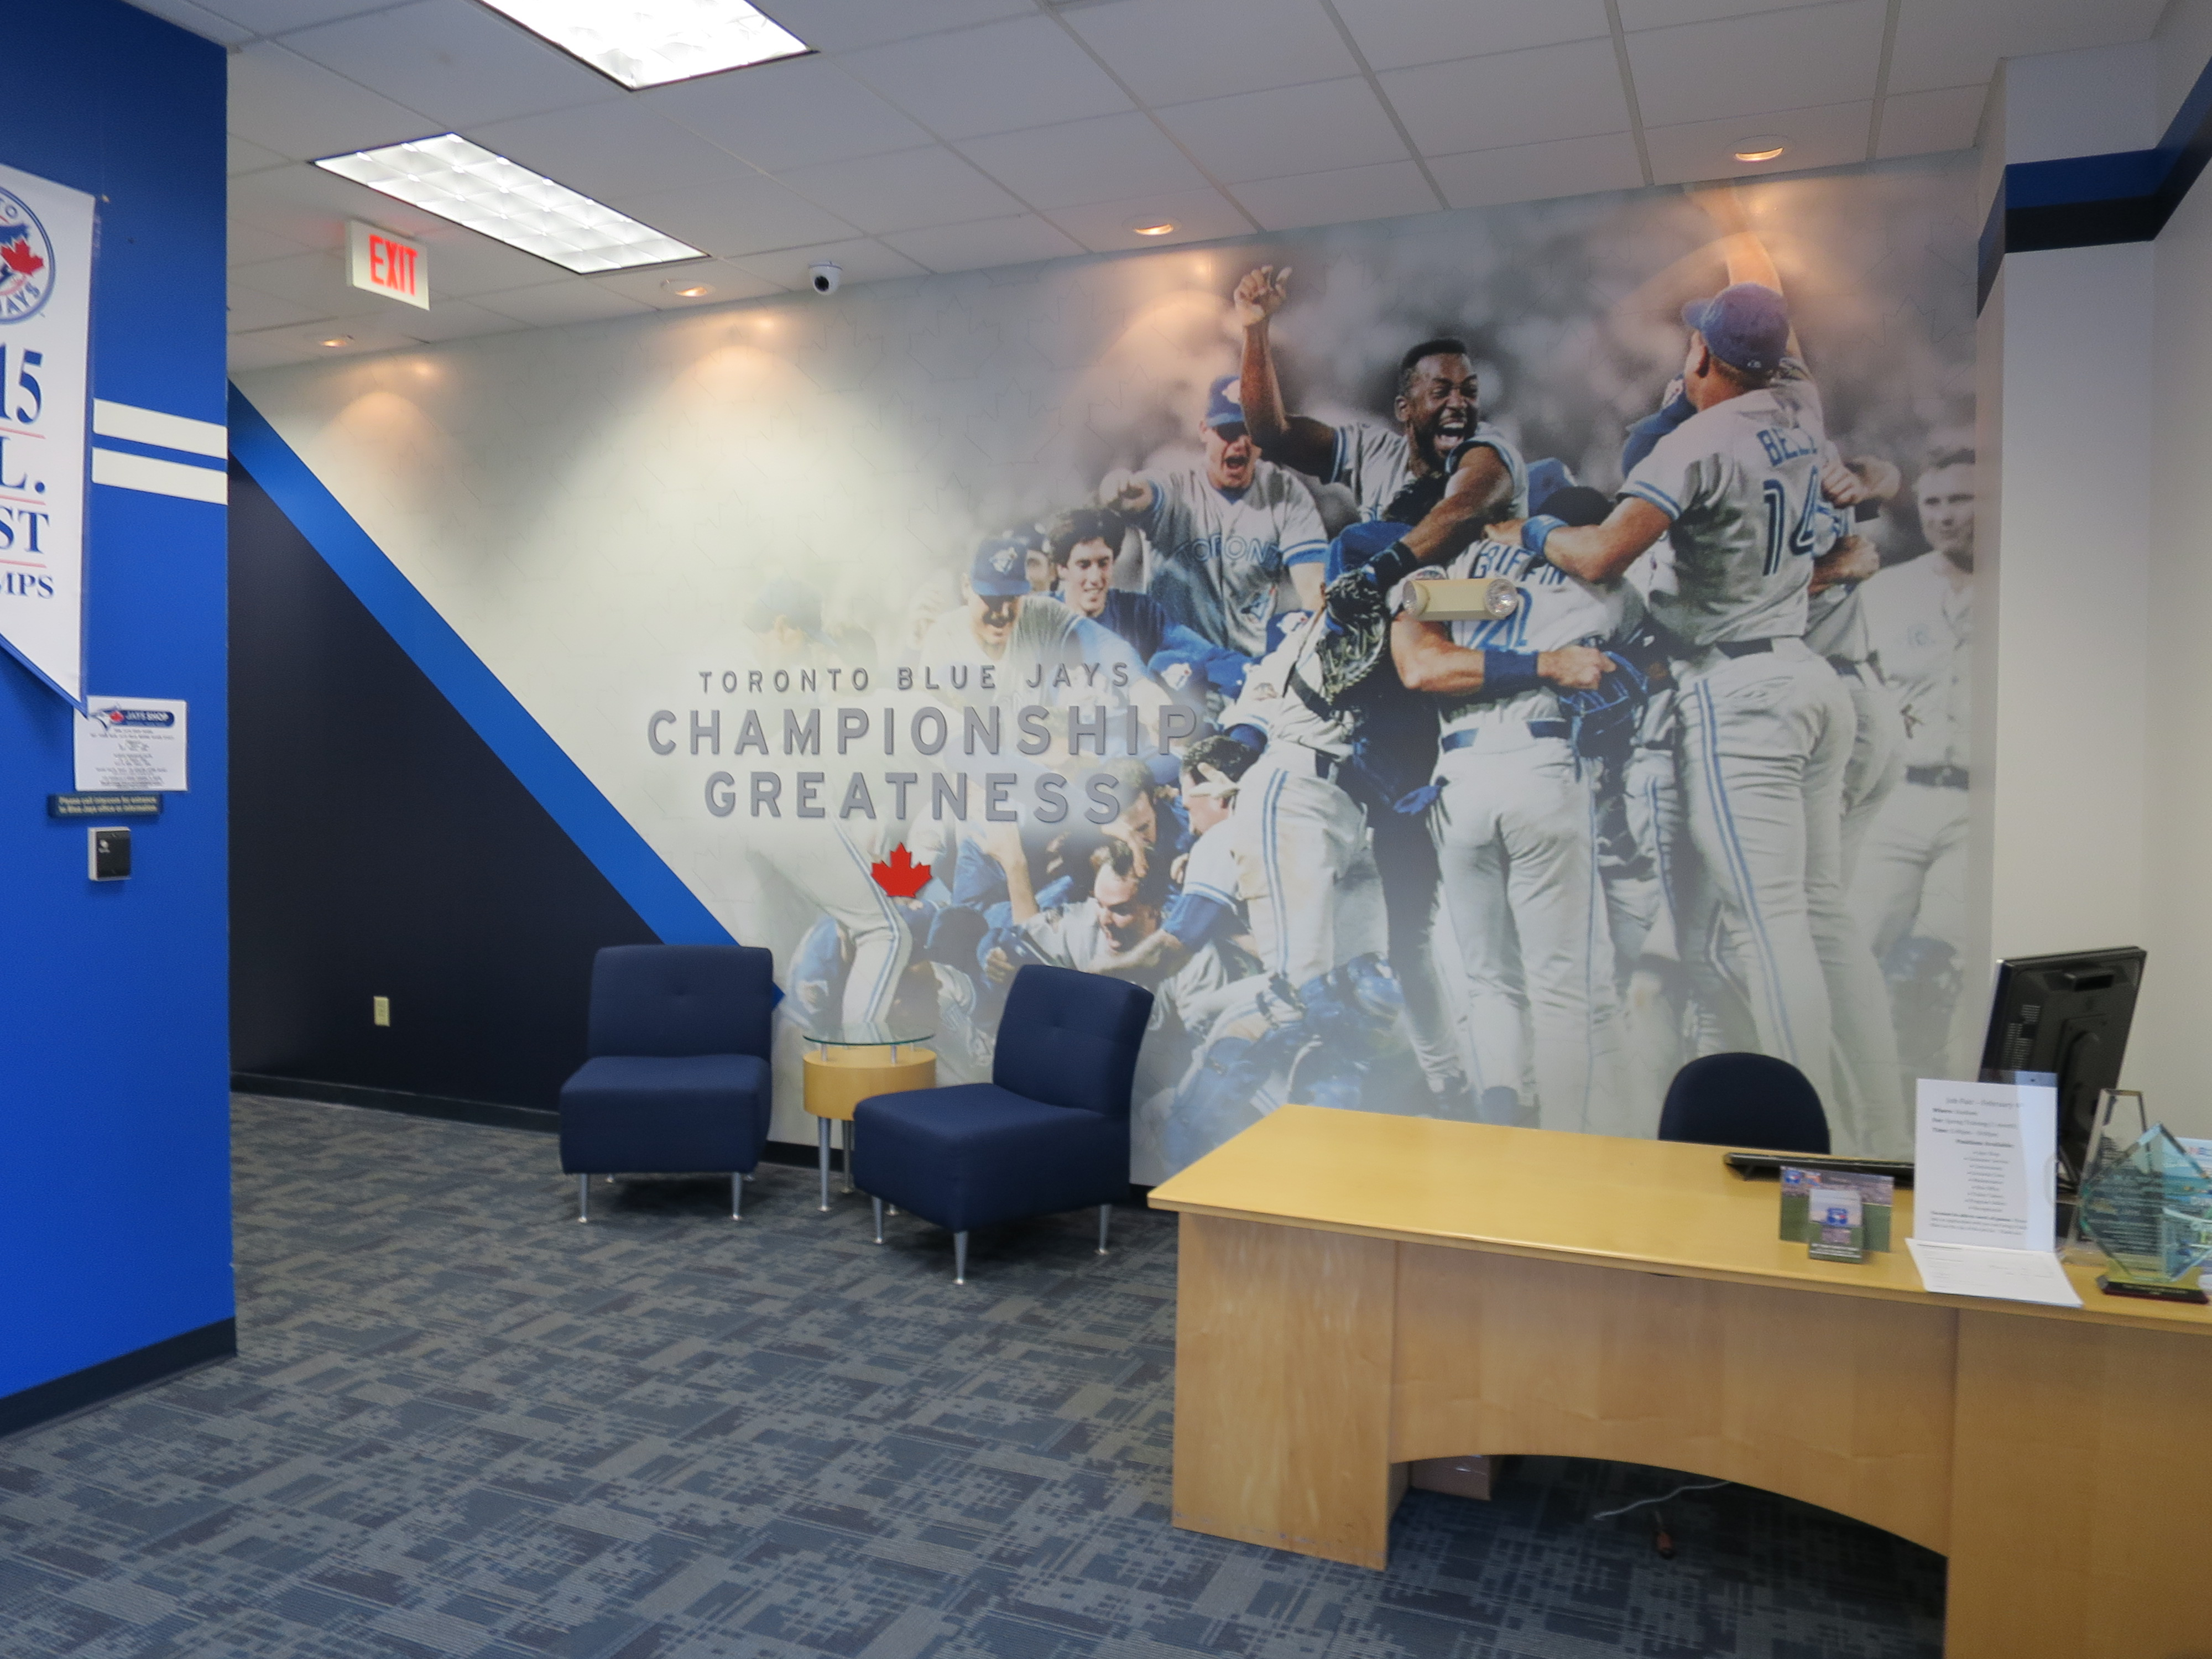 sports properties facilities oai inc large format printing wall mural dimensional letters